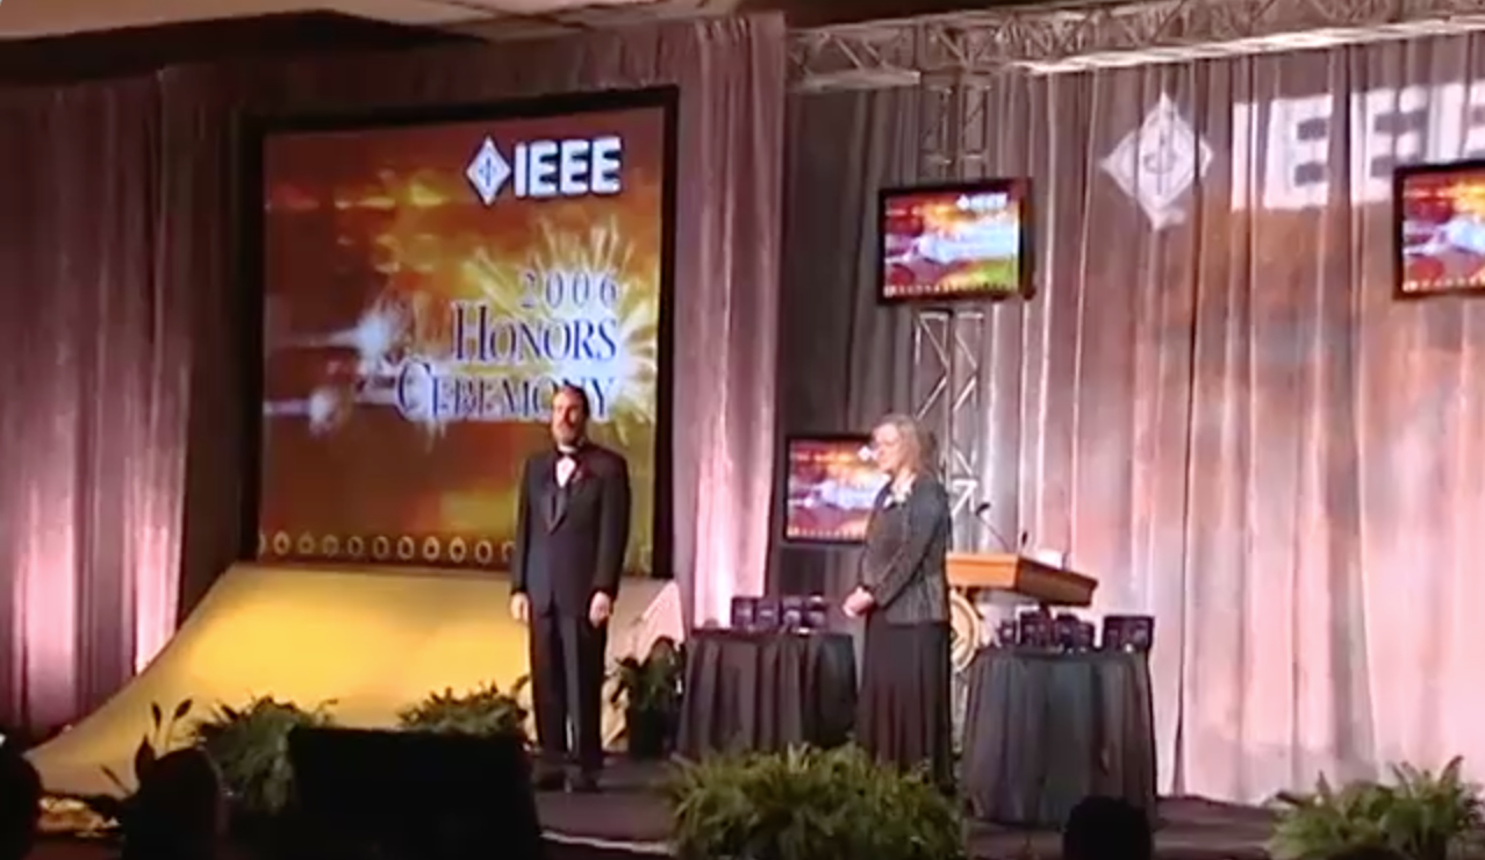 2006 IEEE Honors Ceremony